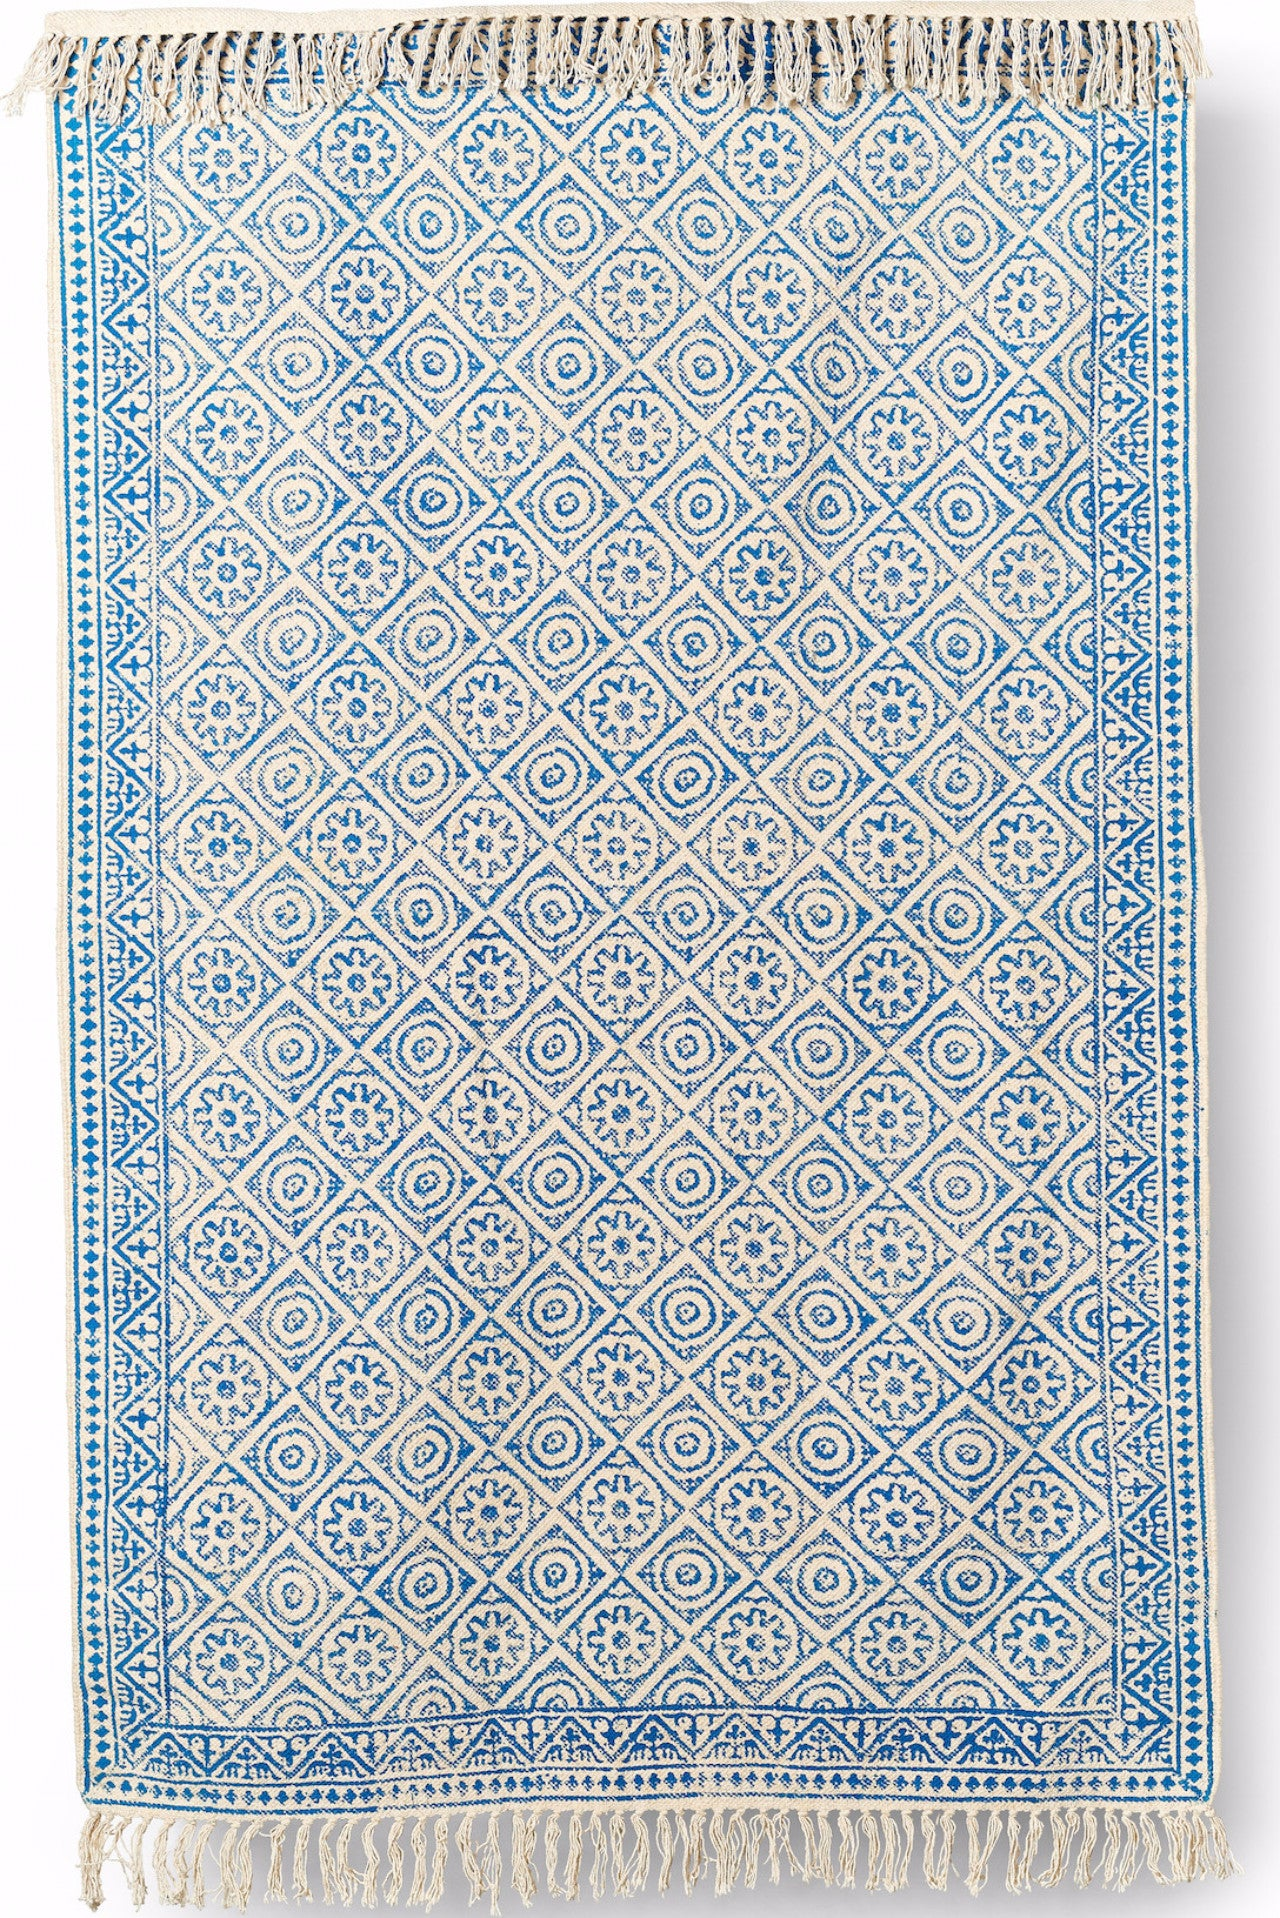 Cotton Hand Block Printed Rug - Blue 4X6